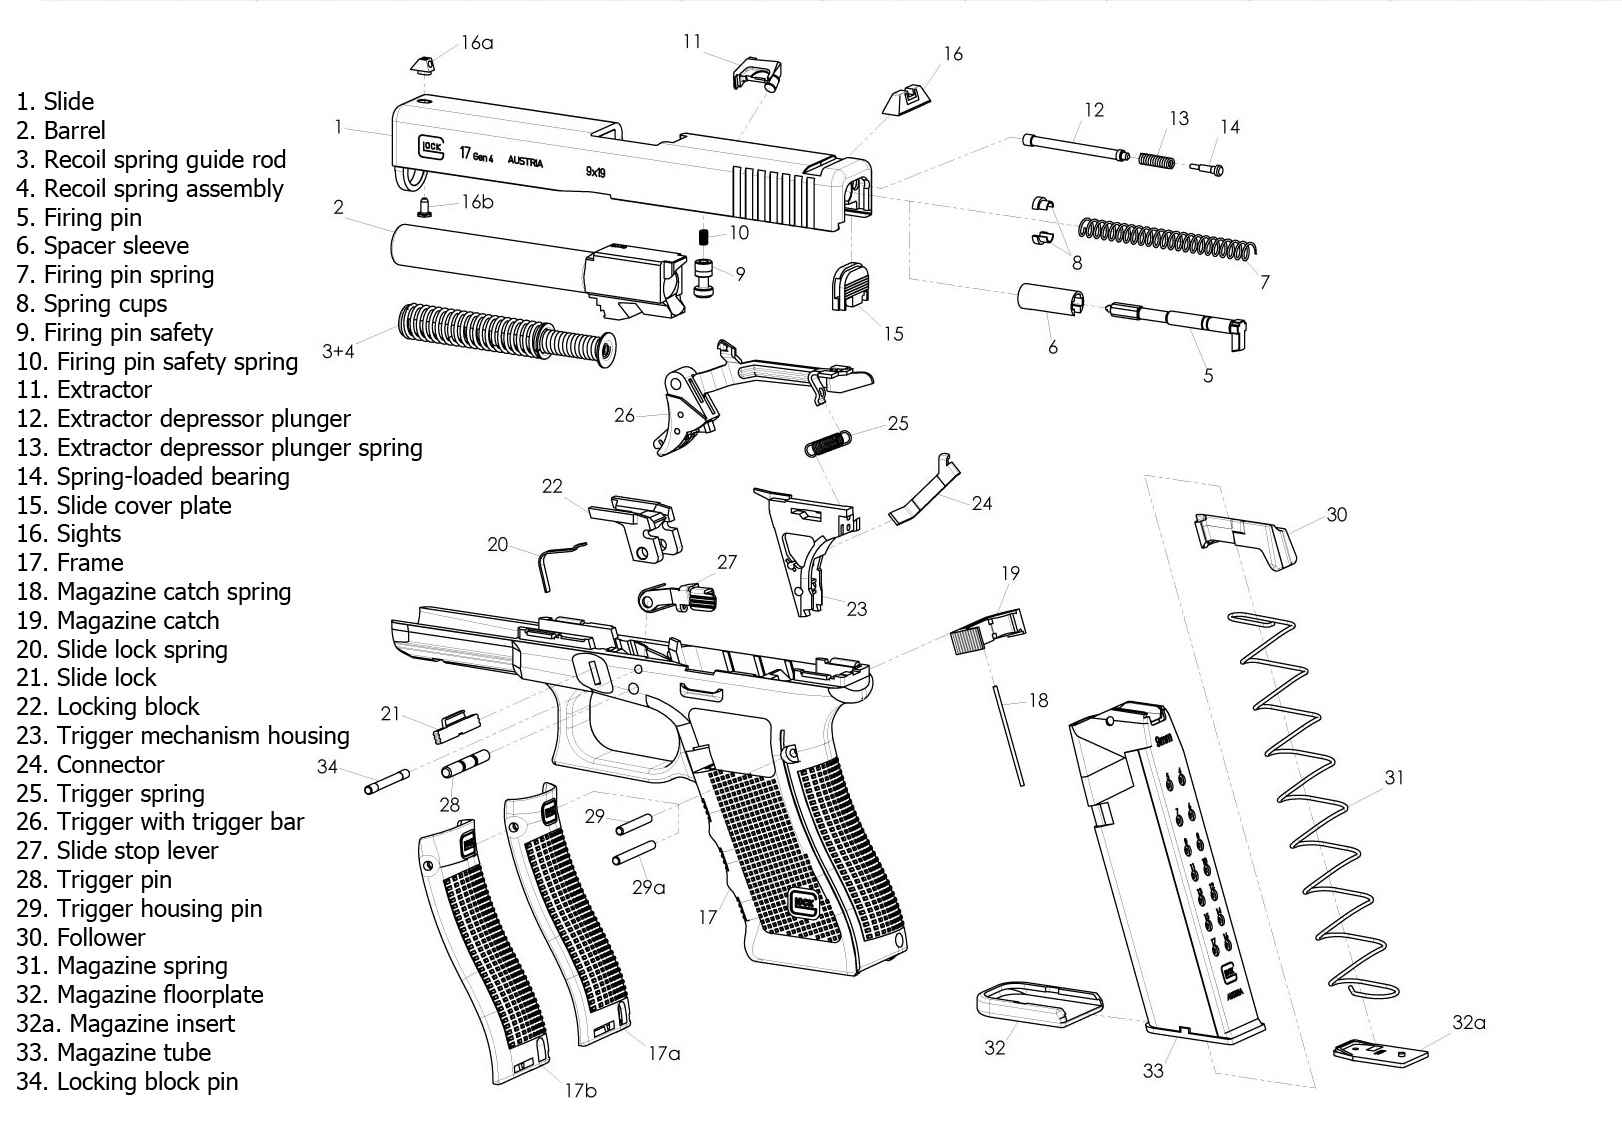 P 0996b43f802c54ce moreover 3 9l V8 Ford Firing Order furthermore Schematic Design Presentation besides Th400 Exploded View Part List as well P 0996b43f8037892d. on bmw professional wiring diagram 2